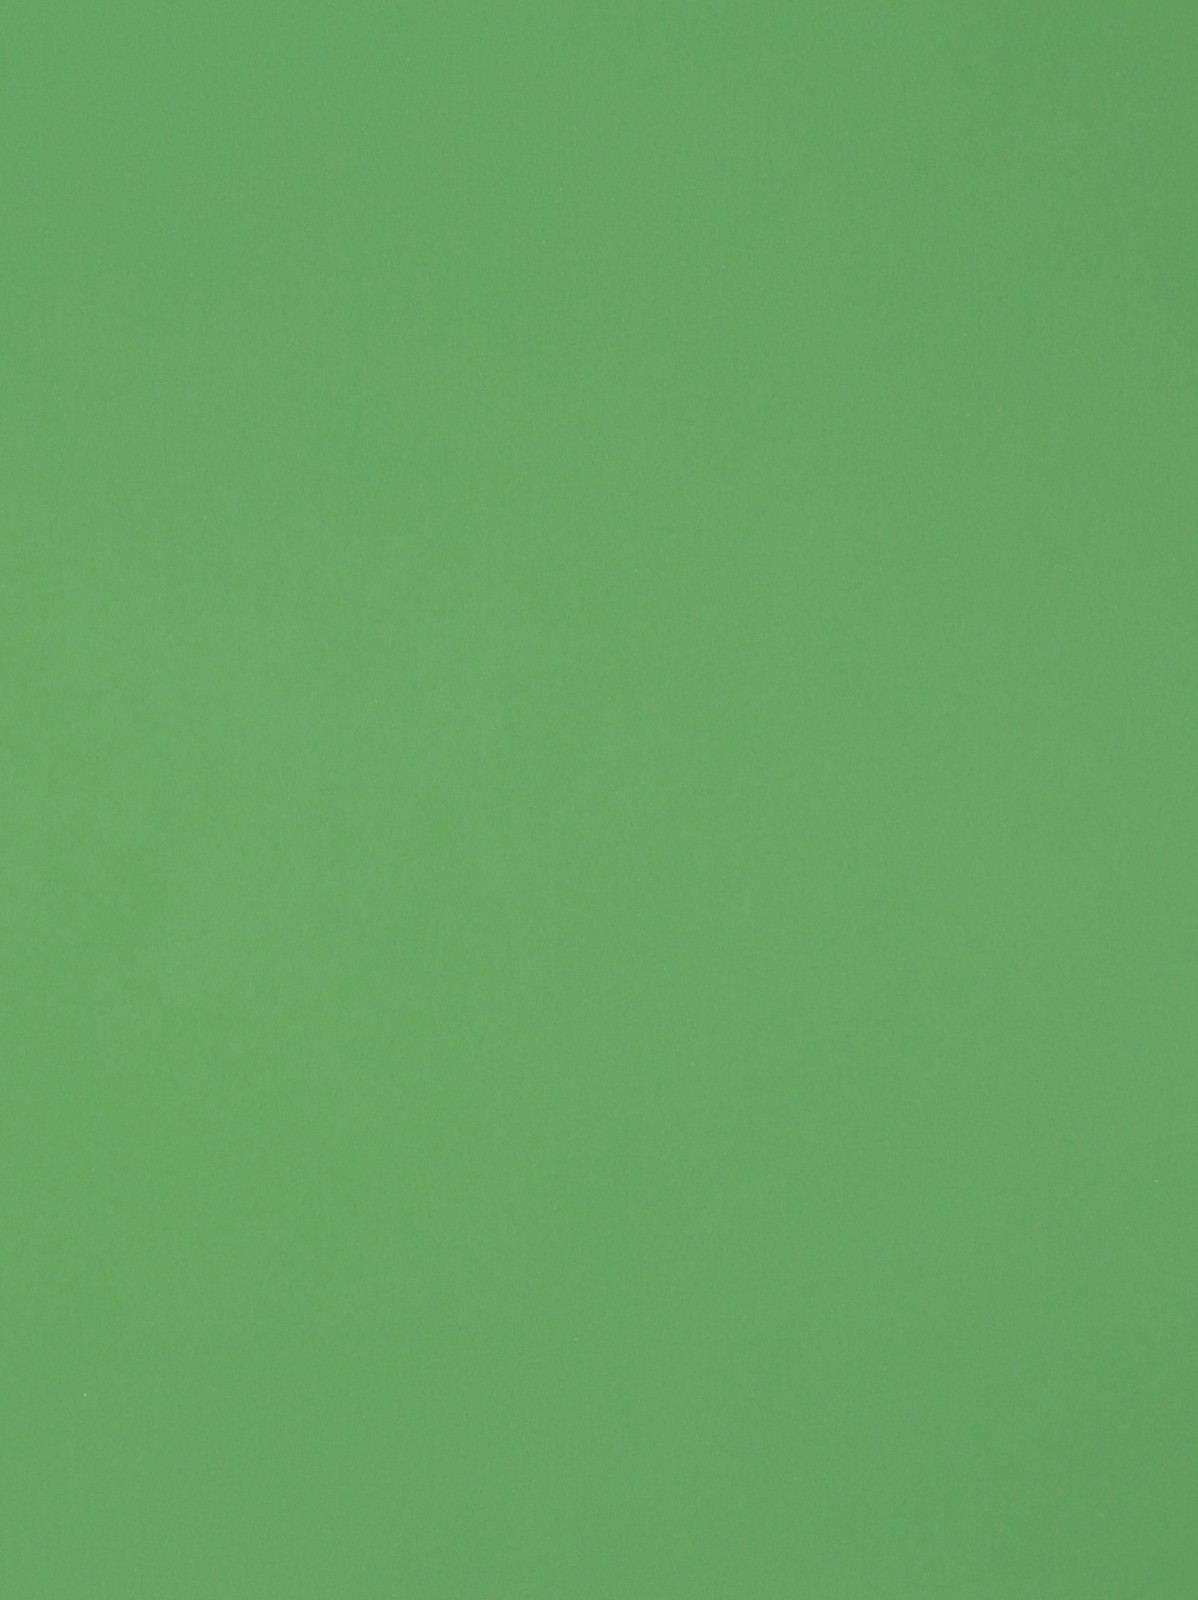 Plain green square